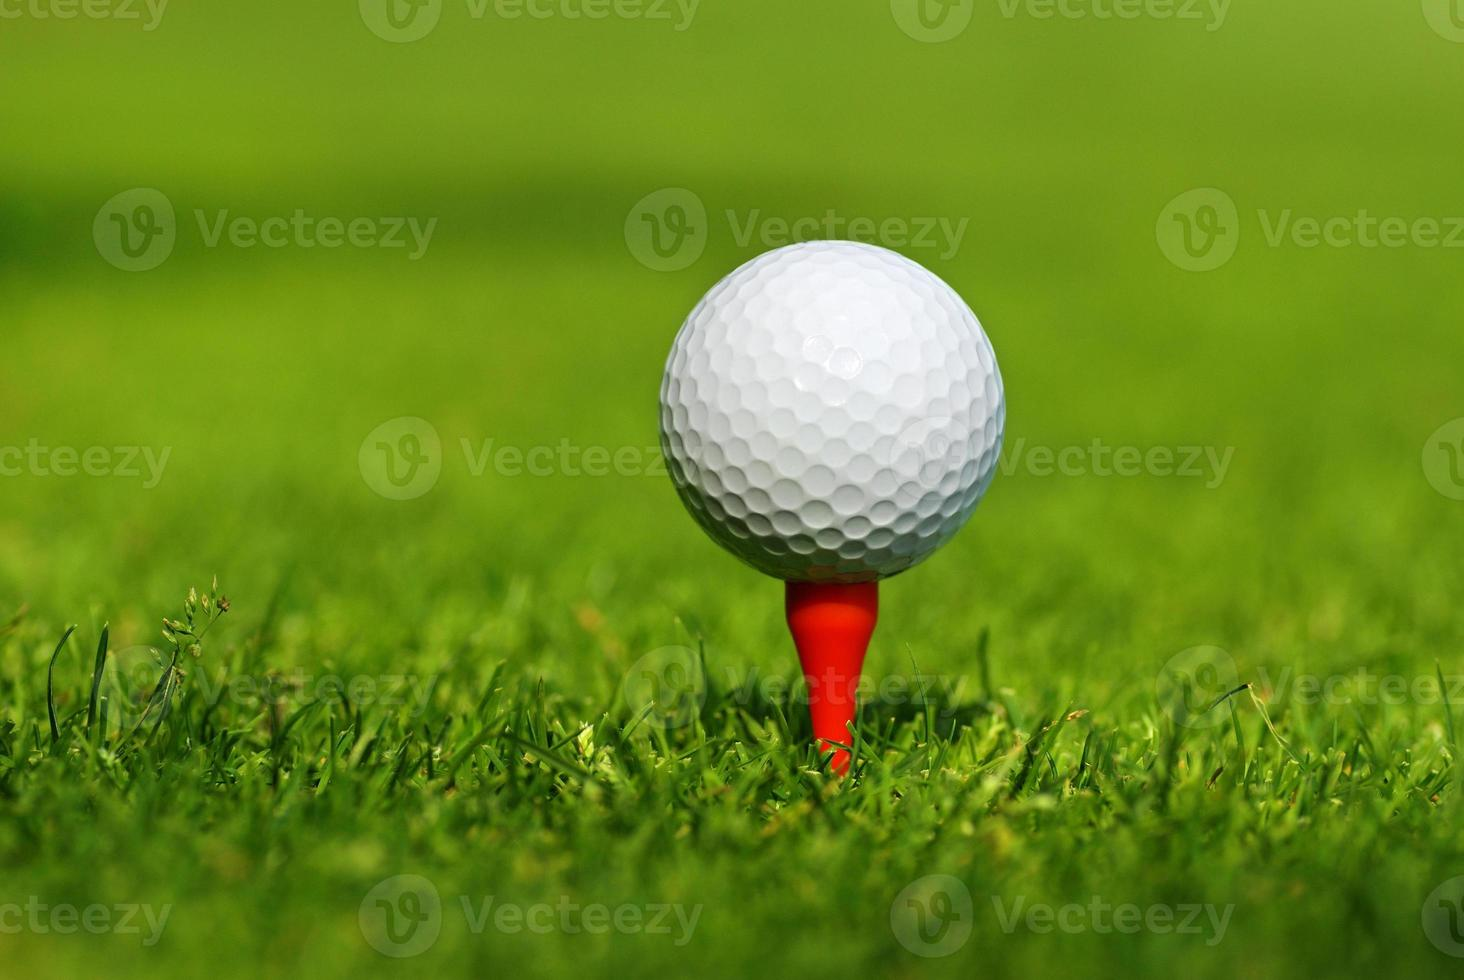 Let's play golf! photo